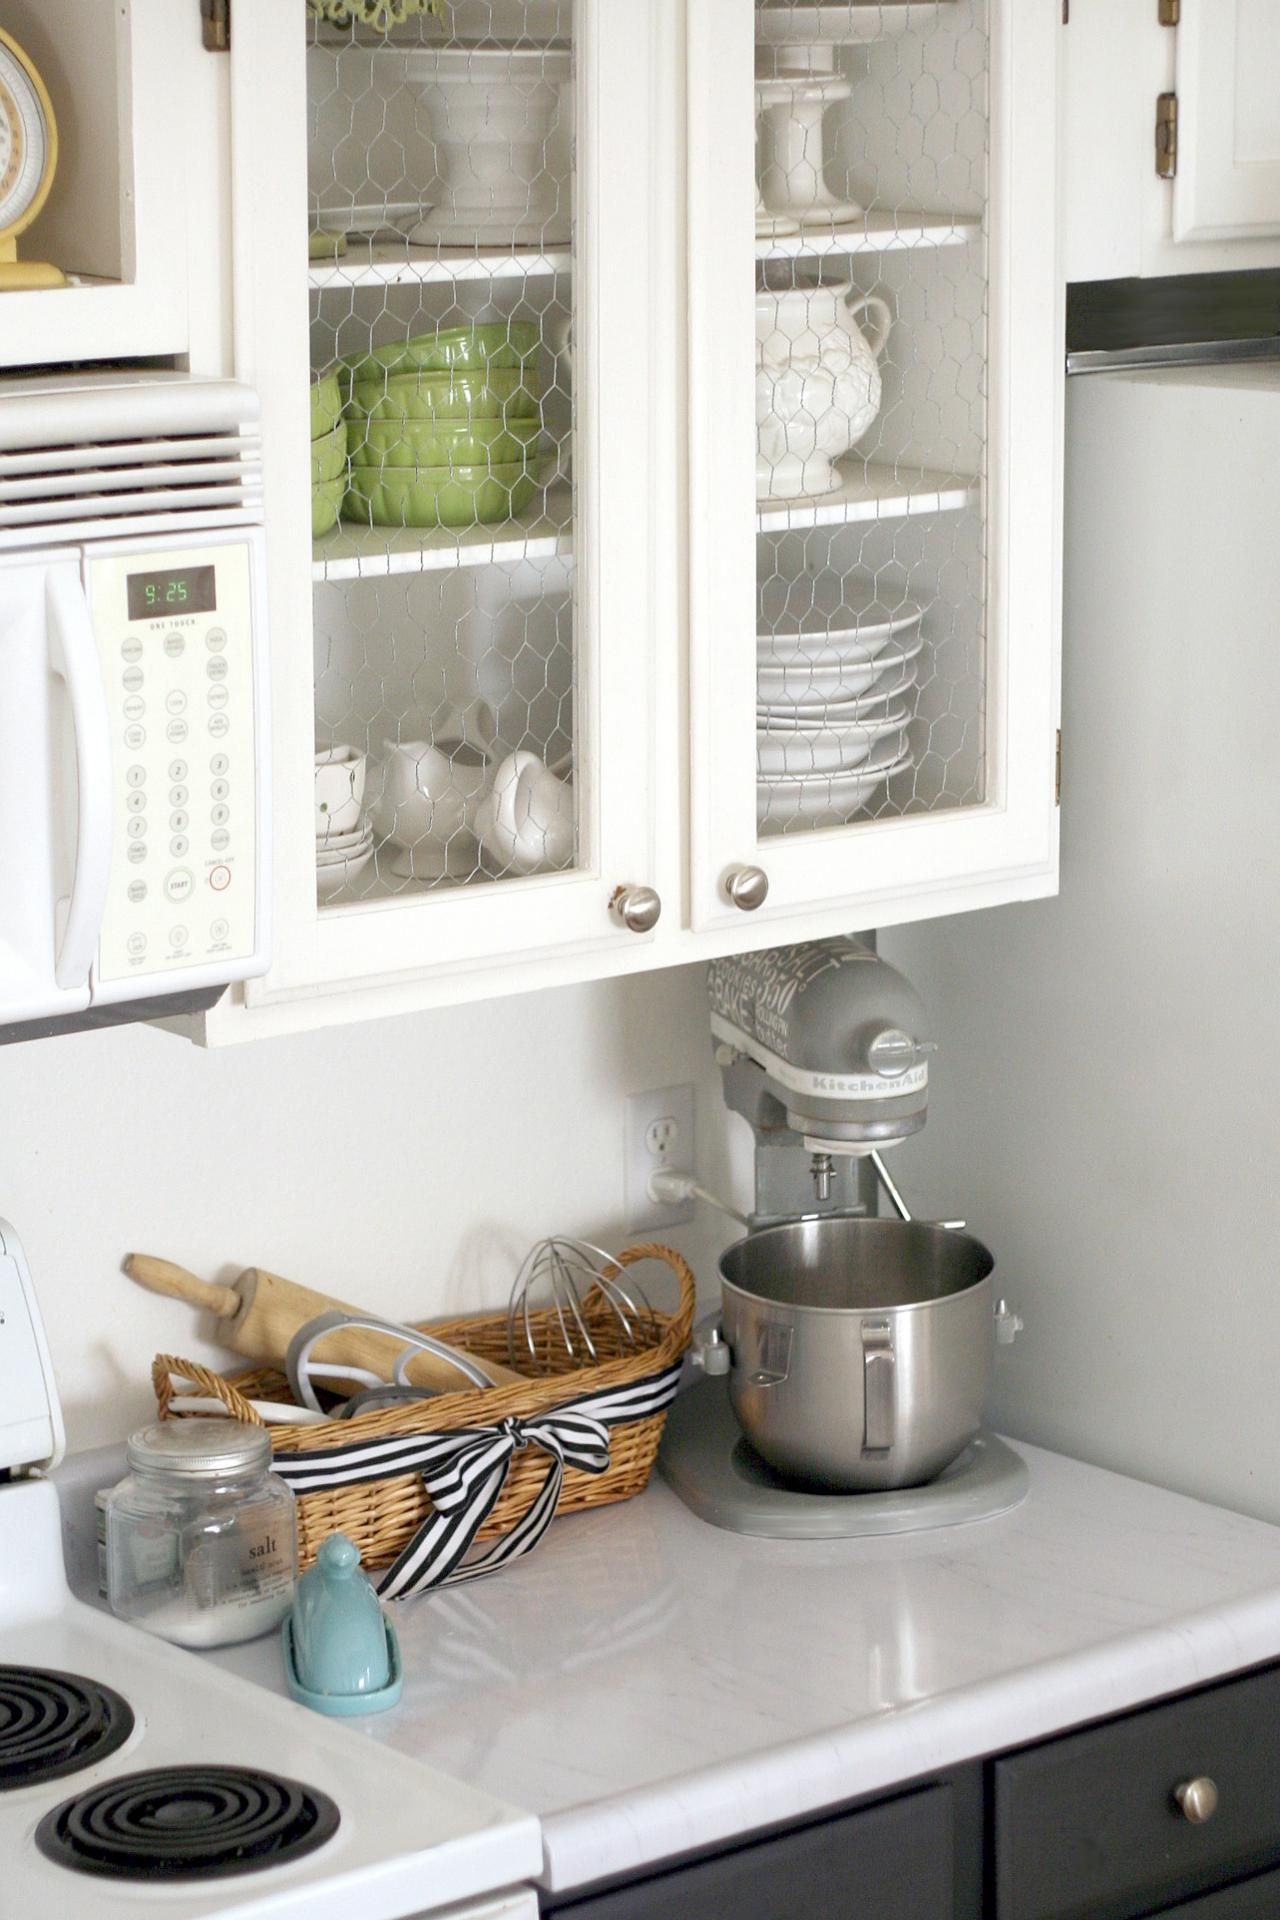 12 Easy Ways To Update Kitchen Cabinets Chicken Wire Cabinets Rustic Farmhouse Style Kitchen Kitchen Cabinets